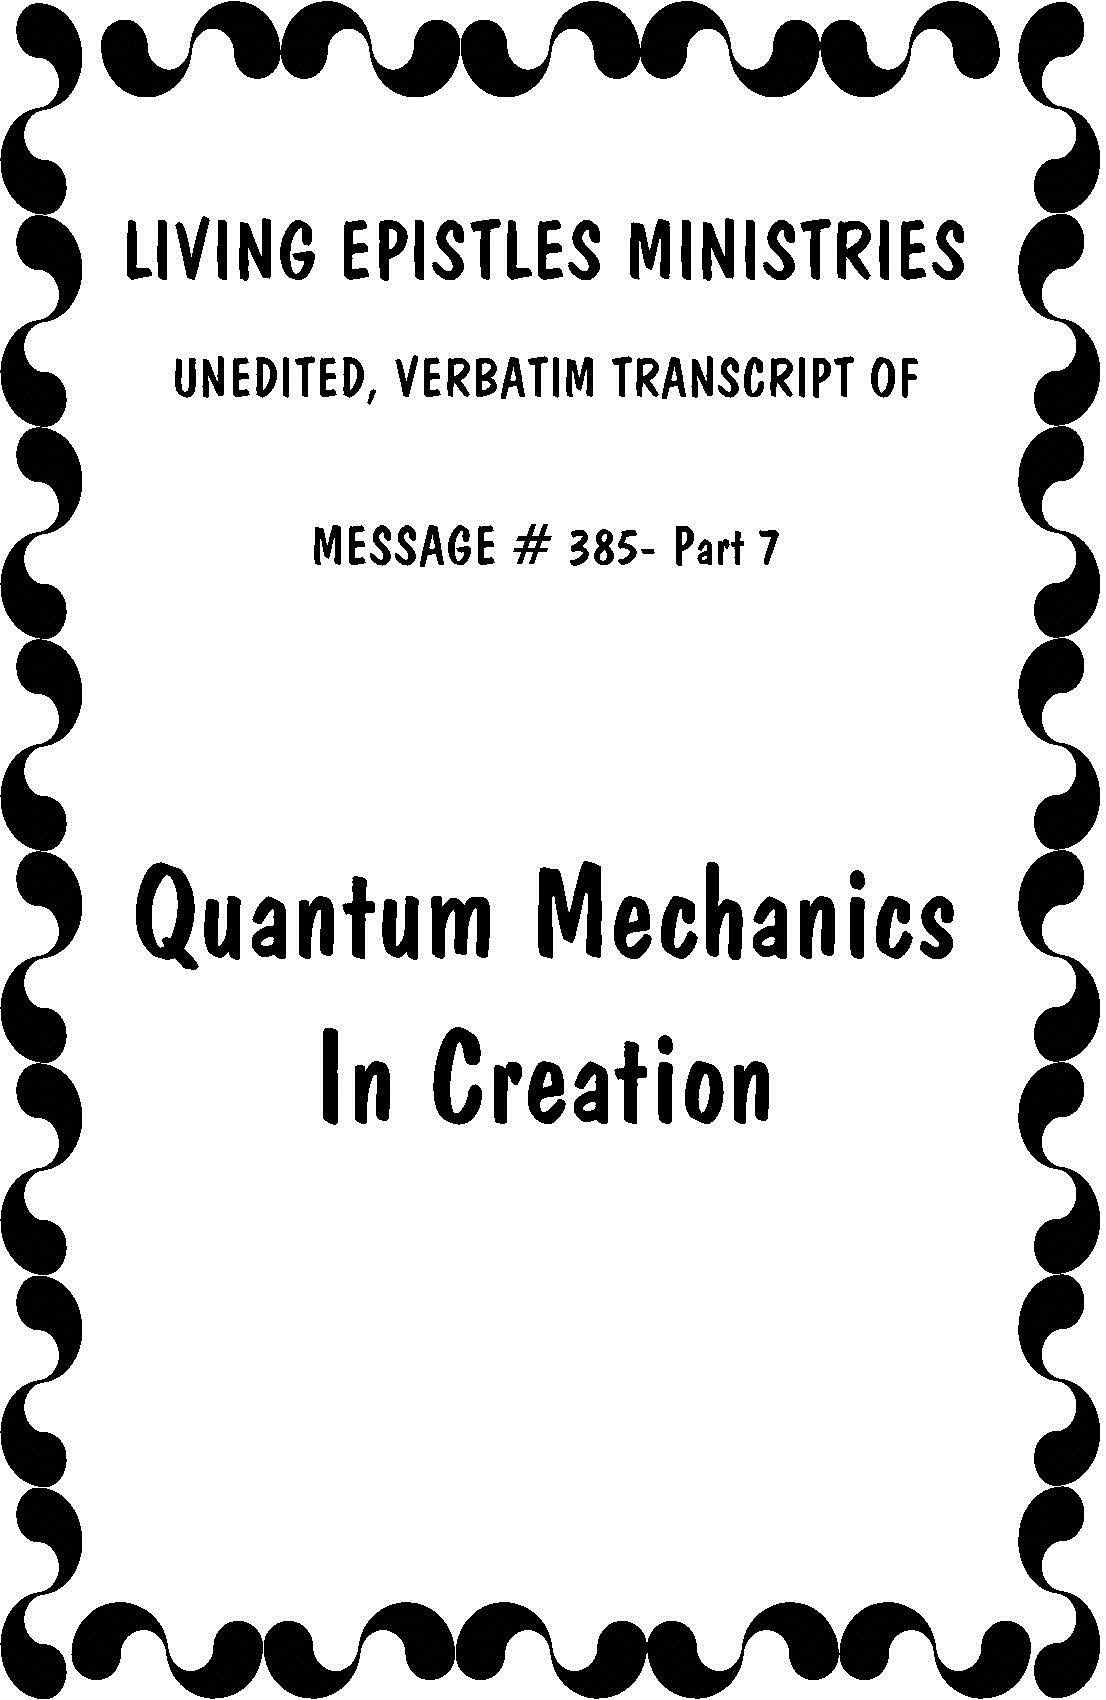 QuantumMechanicsInCreation.LEM.385.07.Cover.040616.72dpi